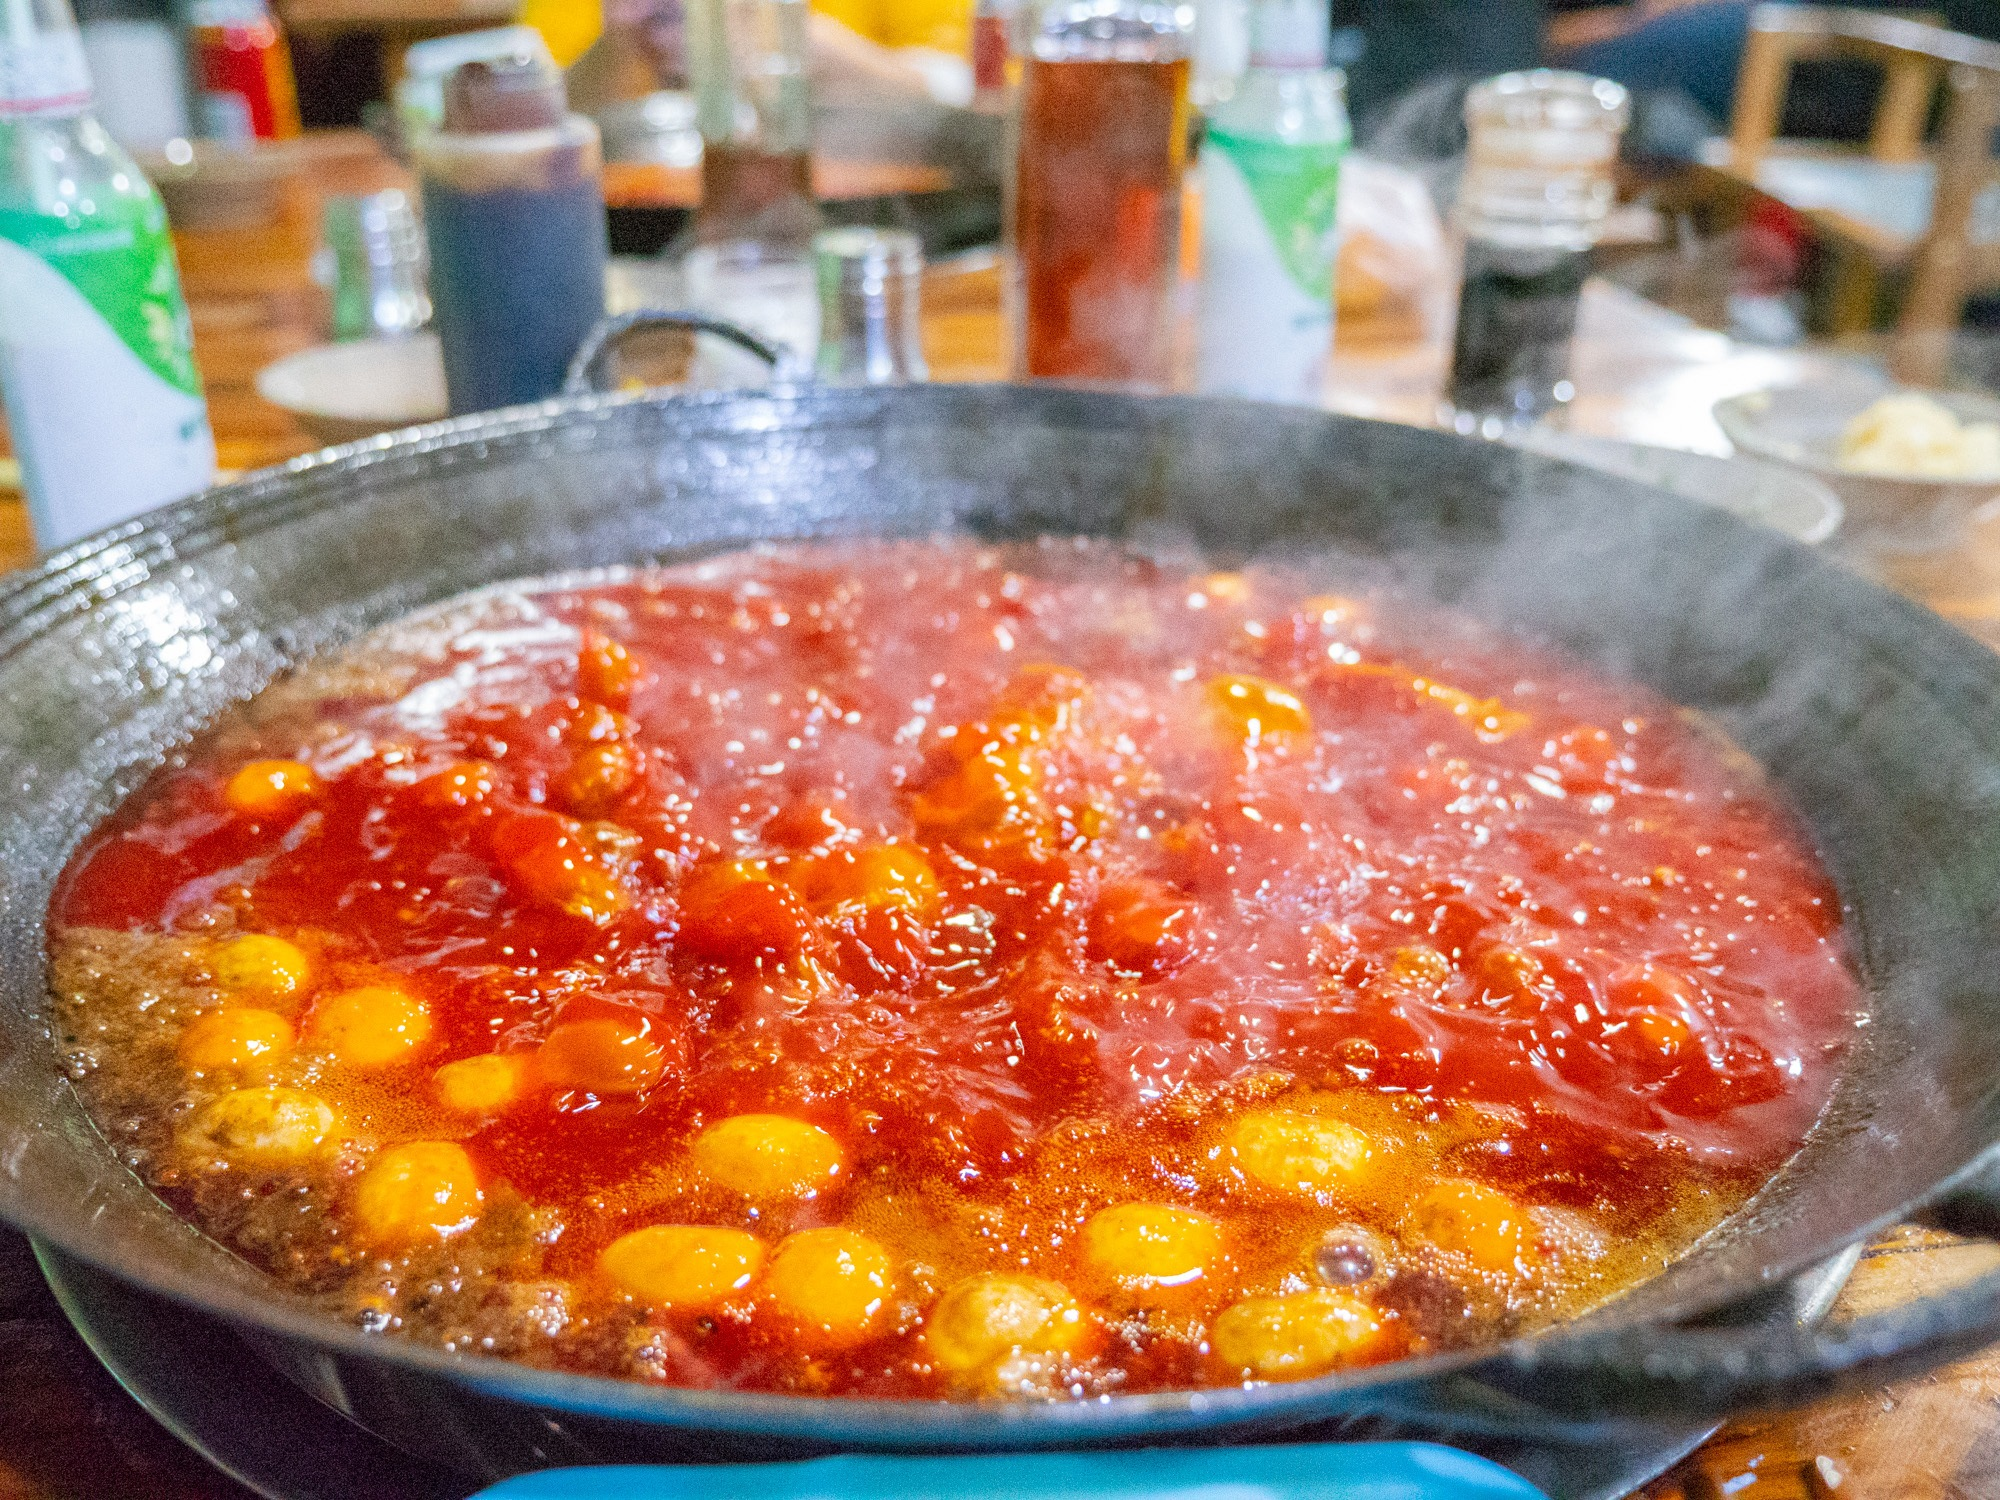 This is a Chongqing style hot pot that you can enjoy in chengdu